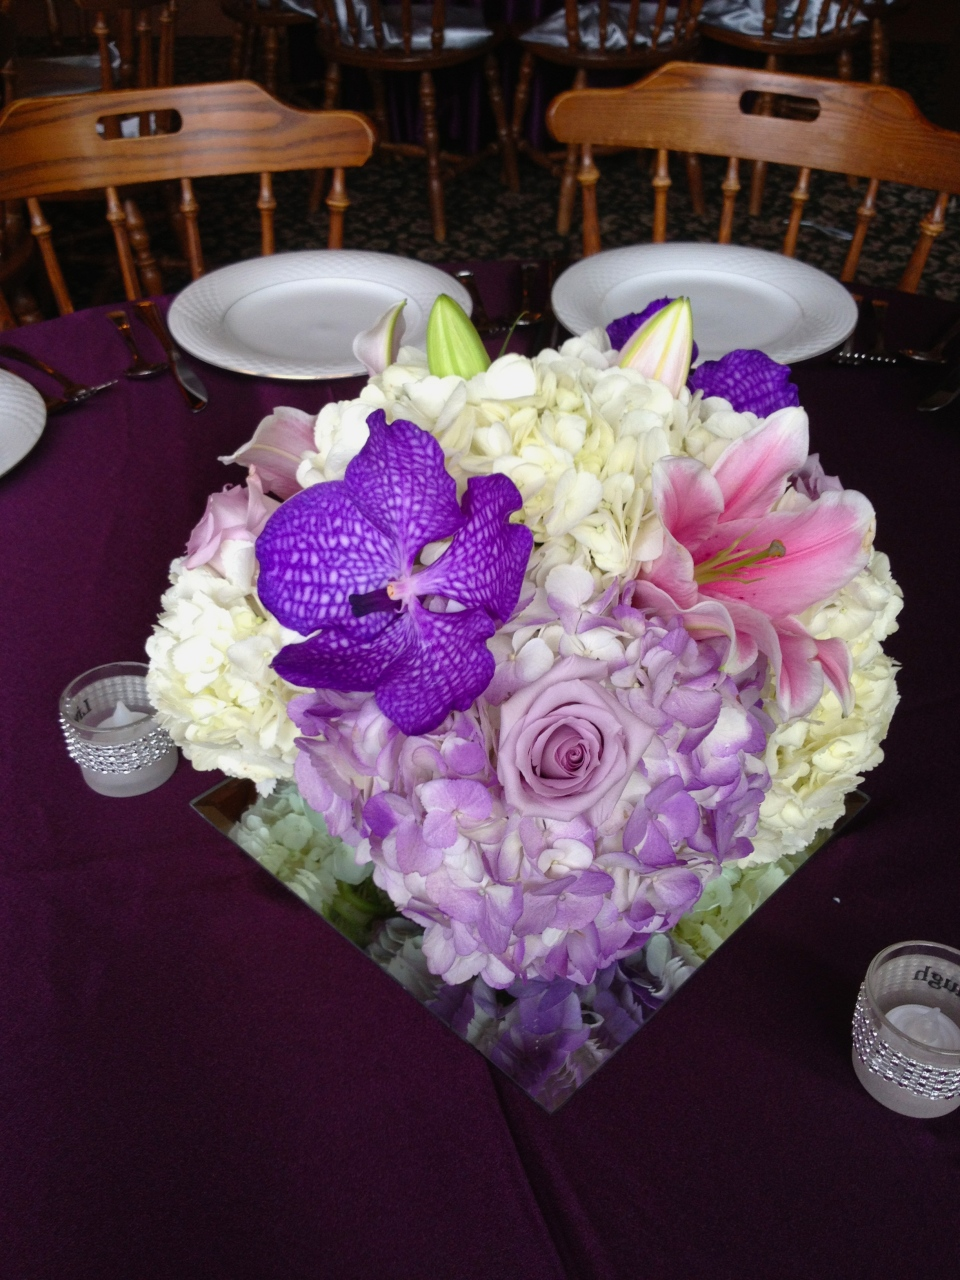 Hydrangea, lilies, roses and vanda orchids in shades of purple and pink.